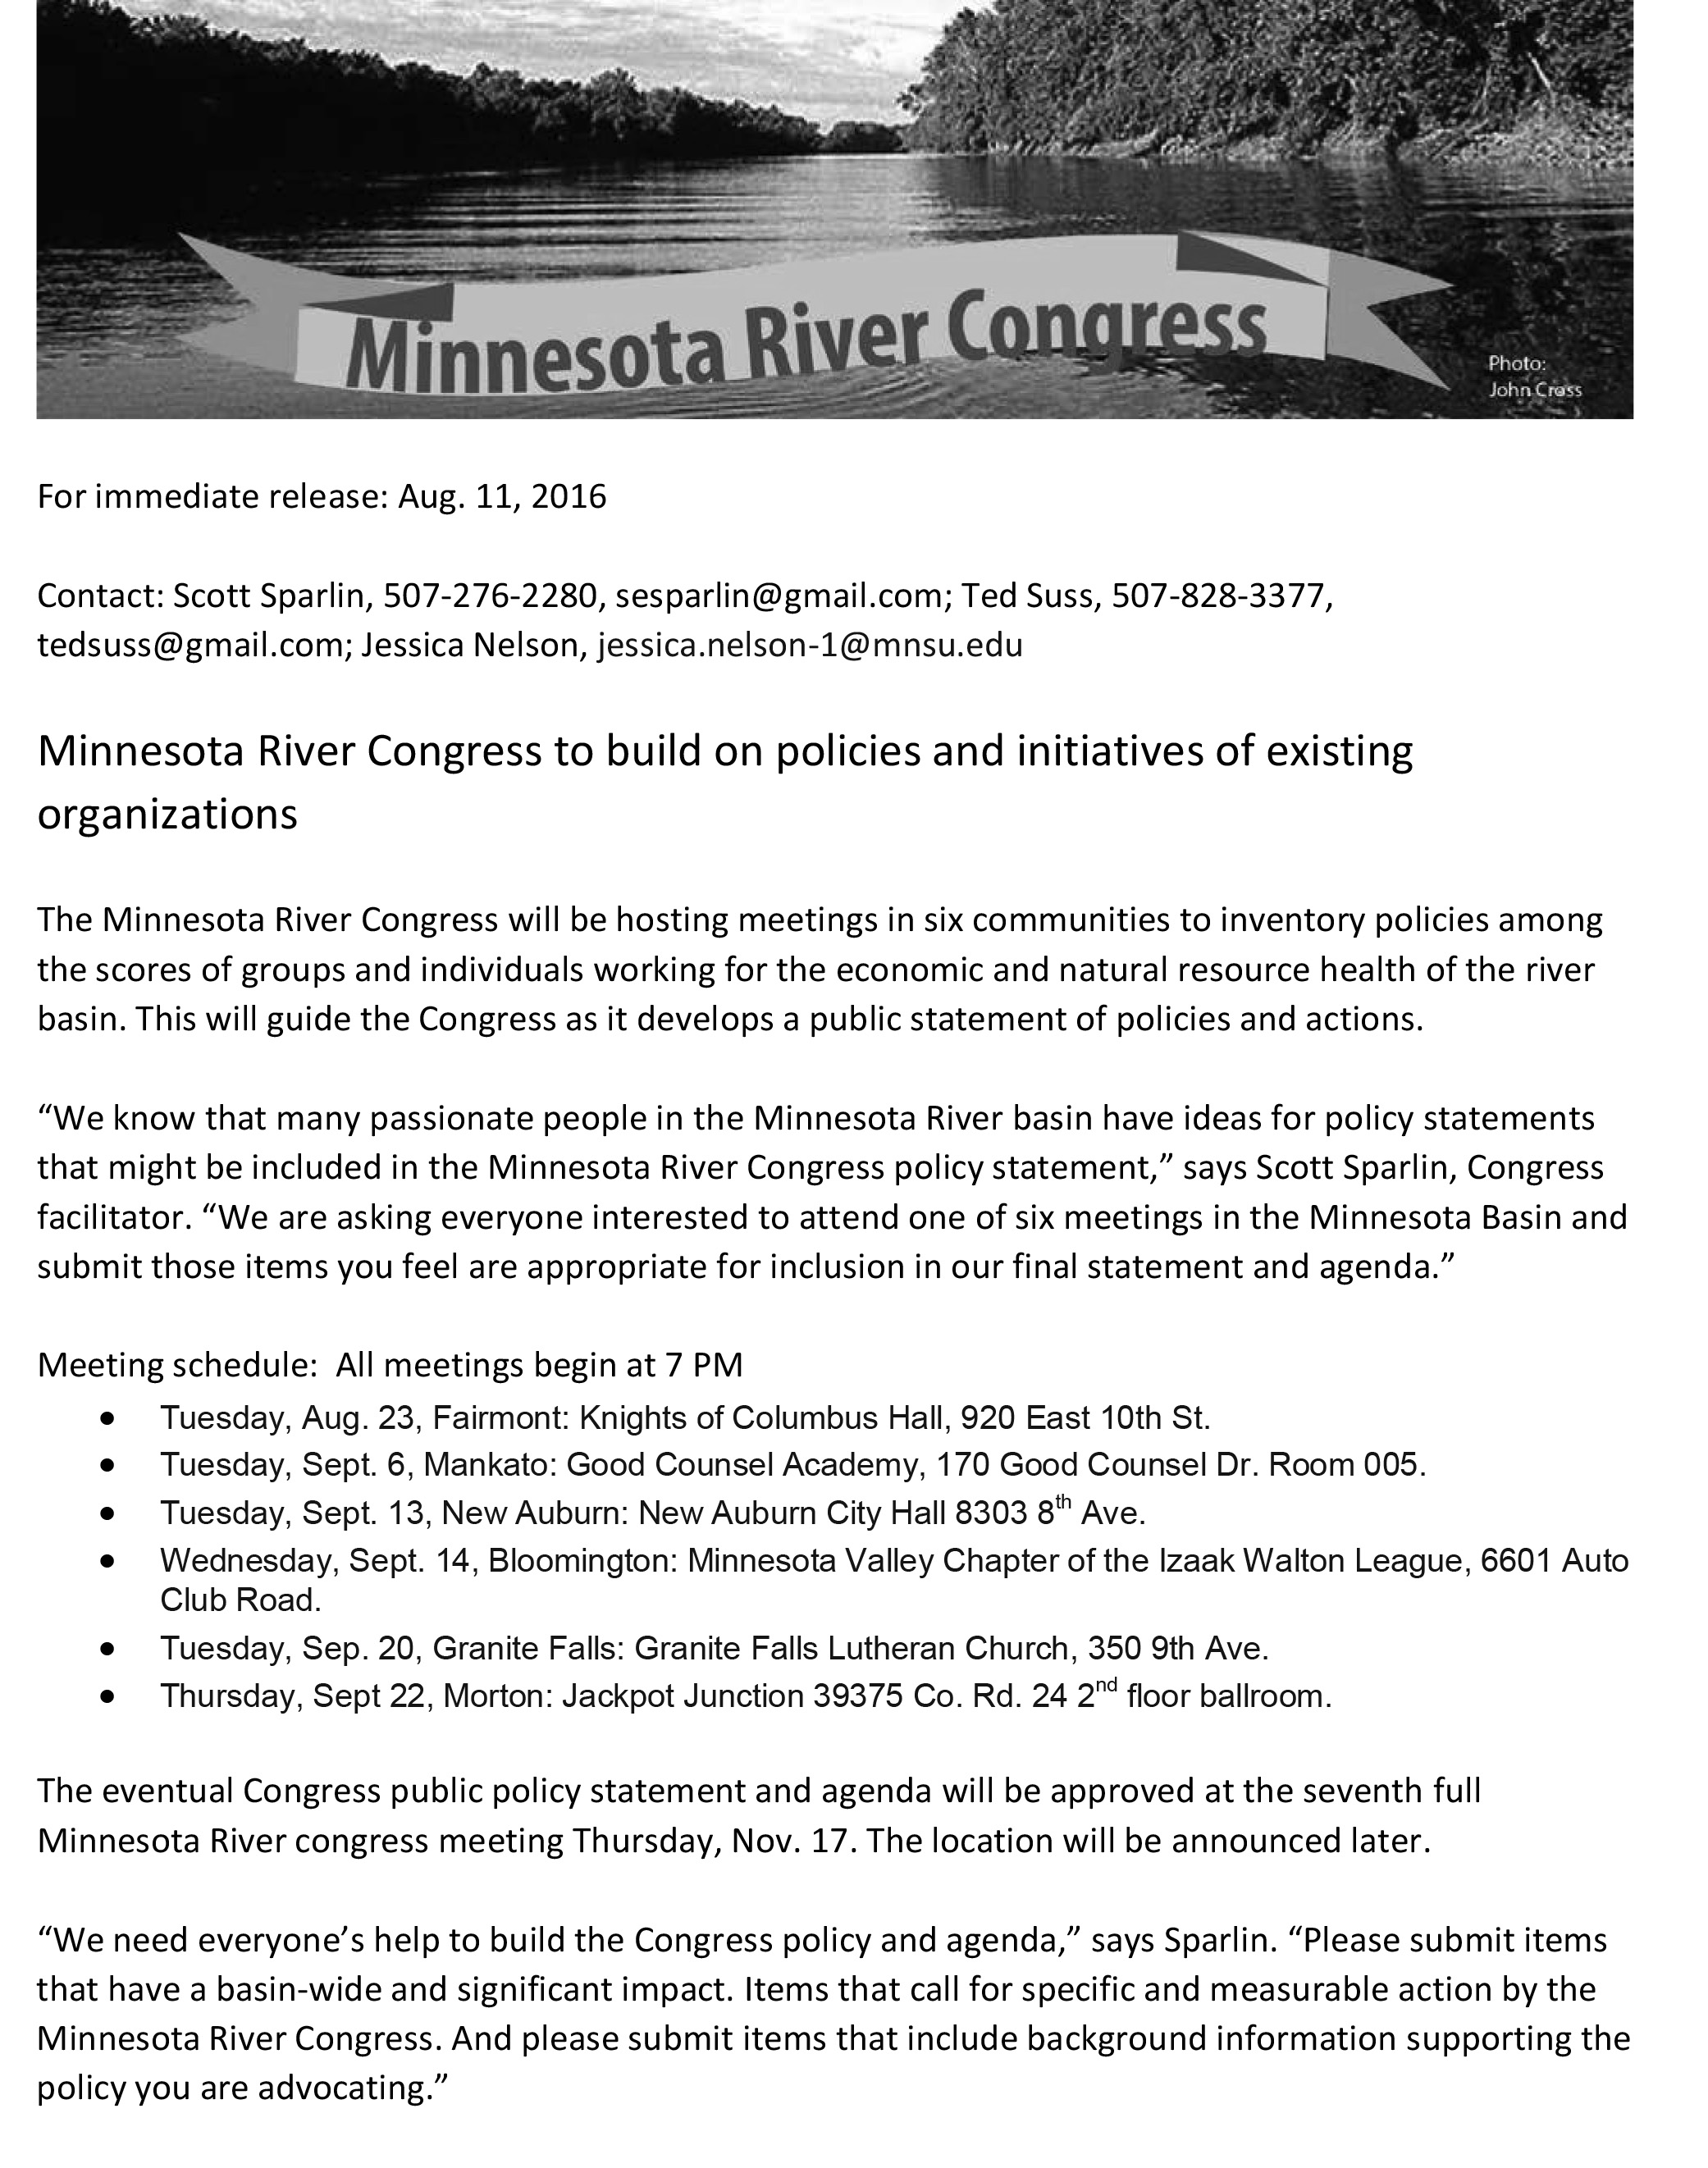 08112016News-MN River Congress seeks policy input-1